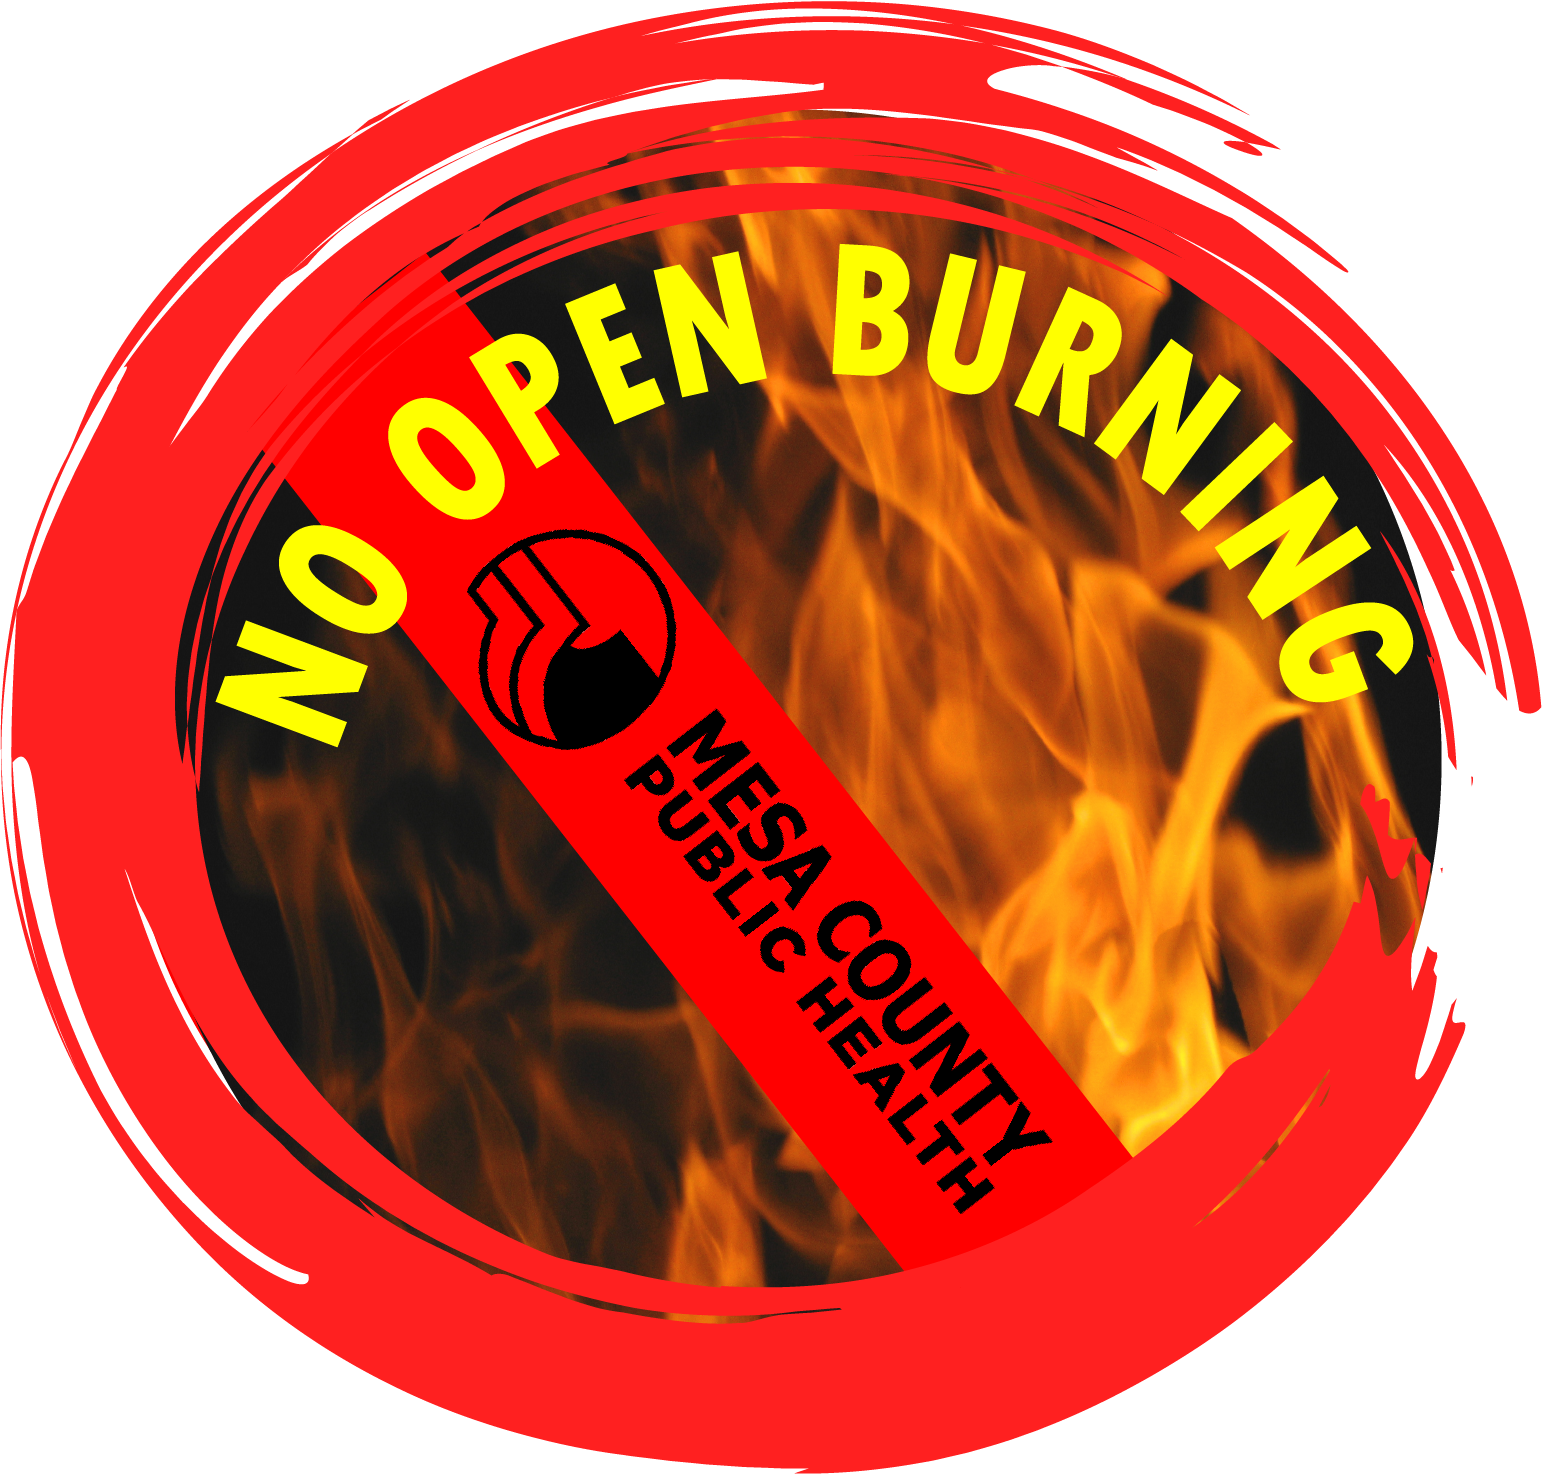 Air Watch Alert – No Open Burning on 04/09/19 from Noon to 10 p.m.